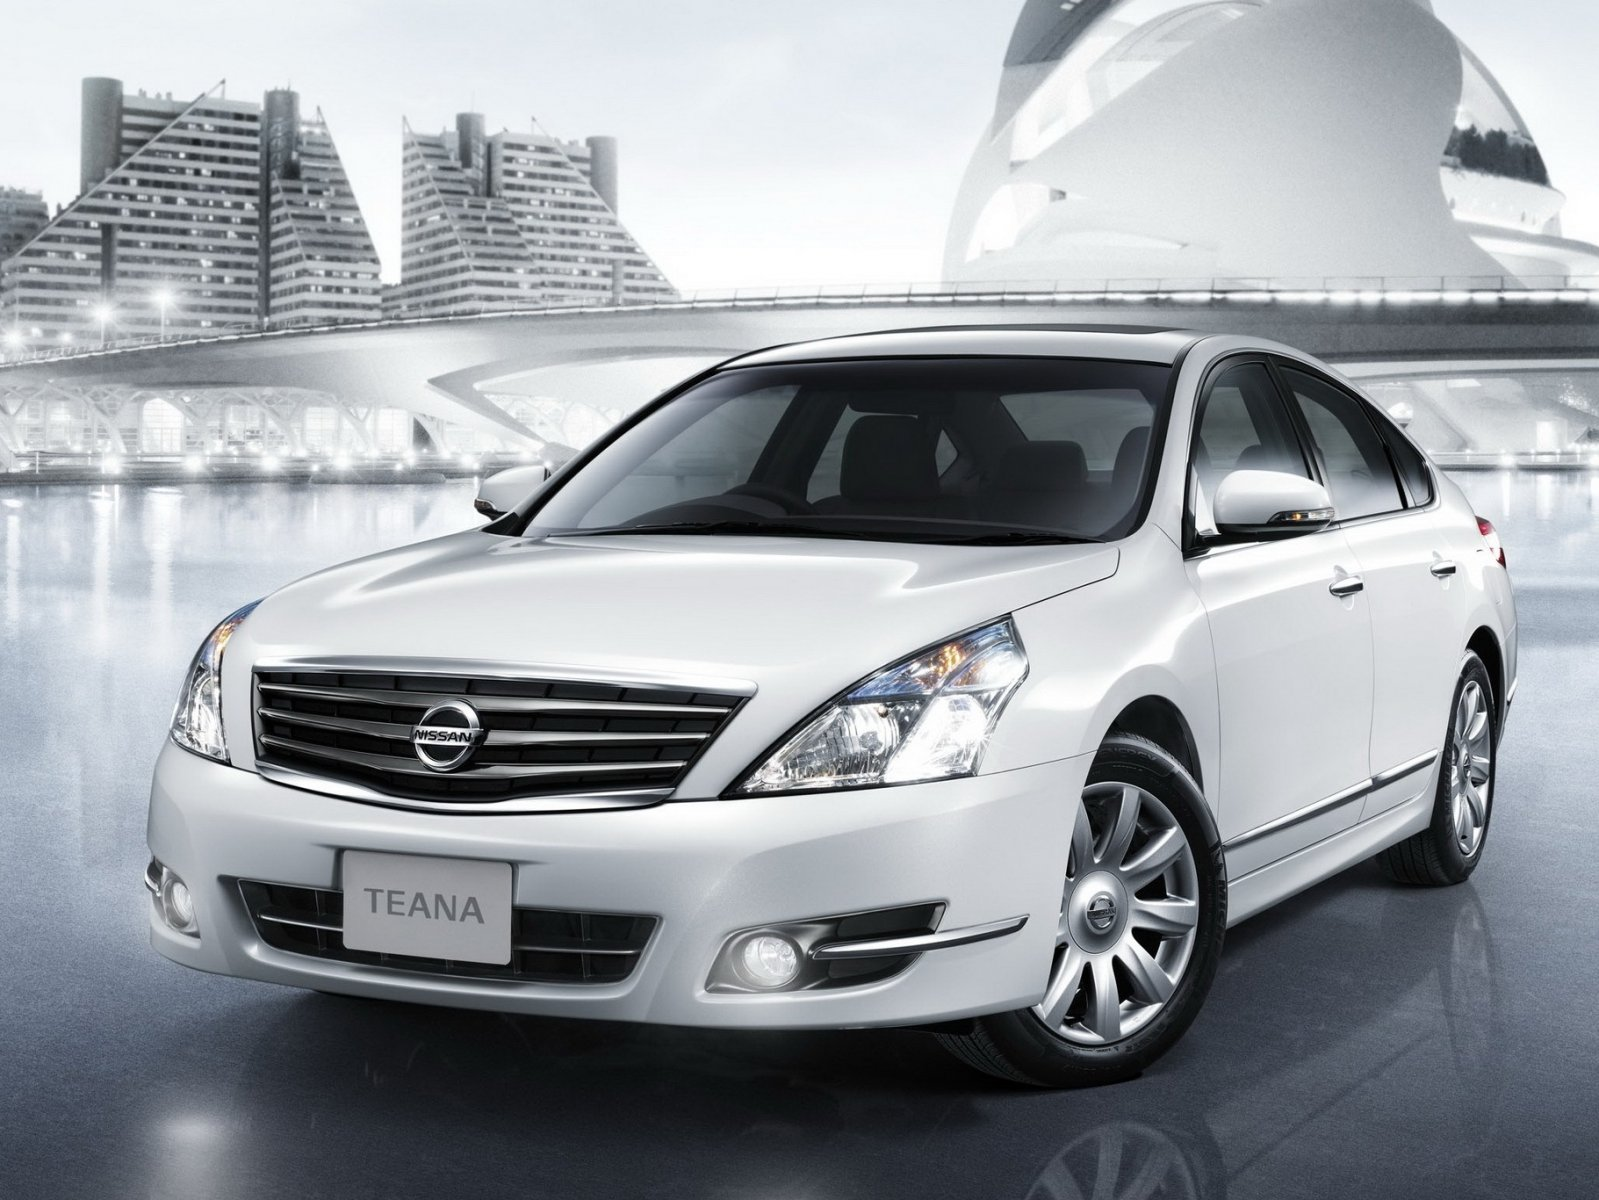 Nissan Teana   pictures, information and specs - Auto-Database.com